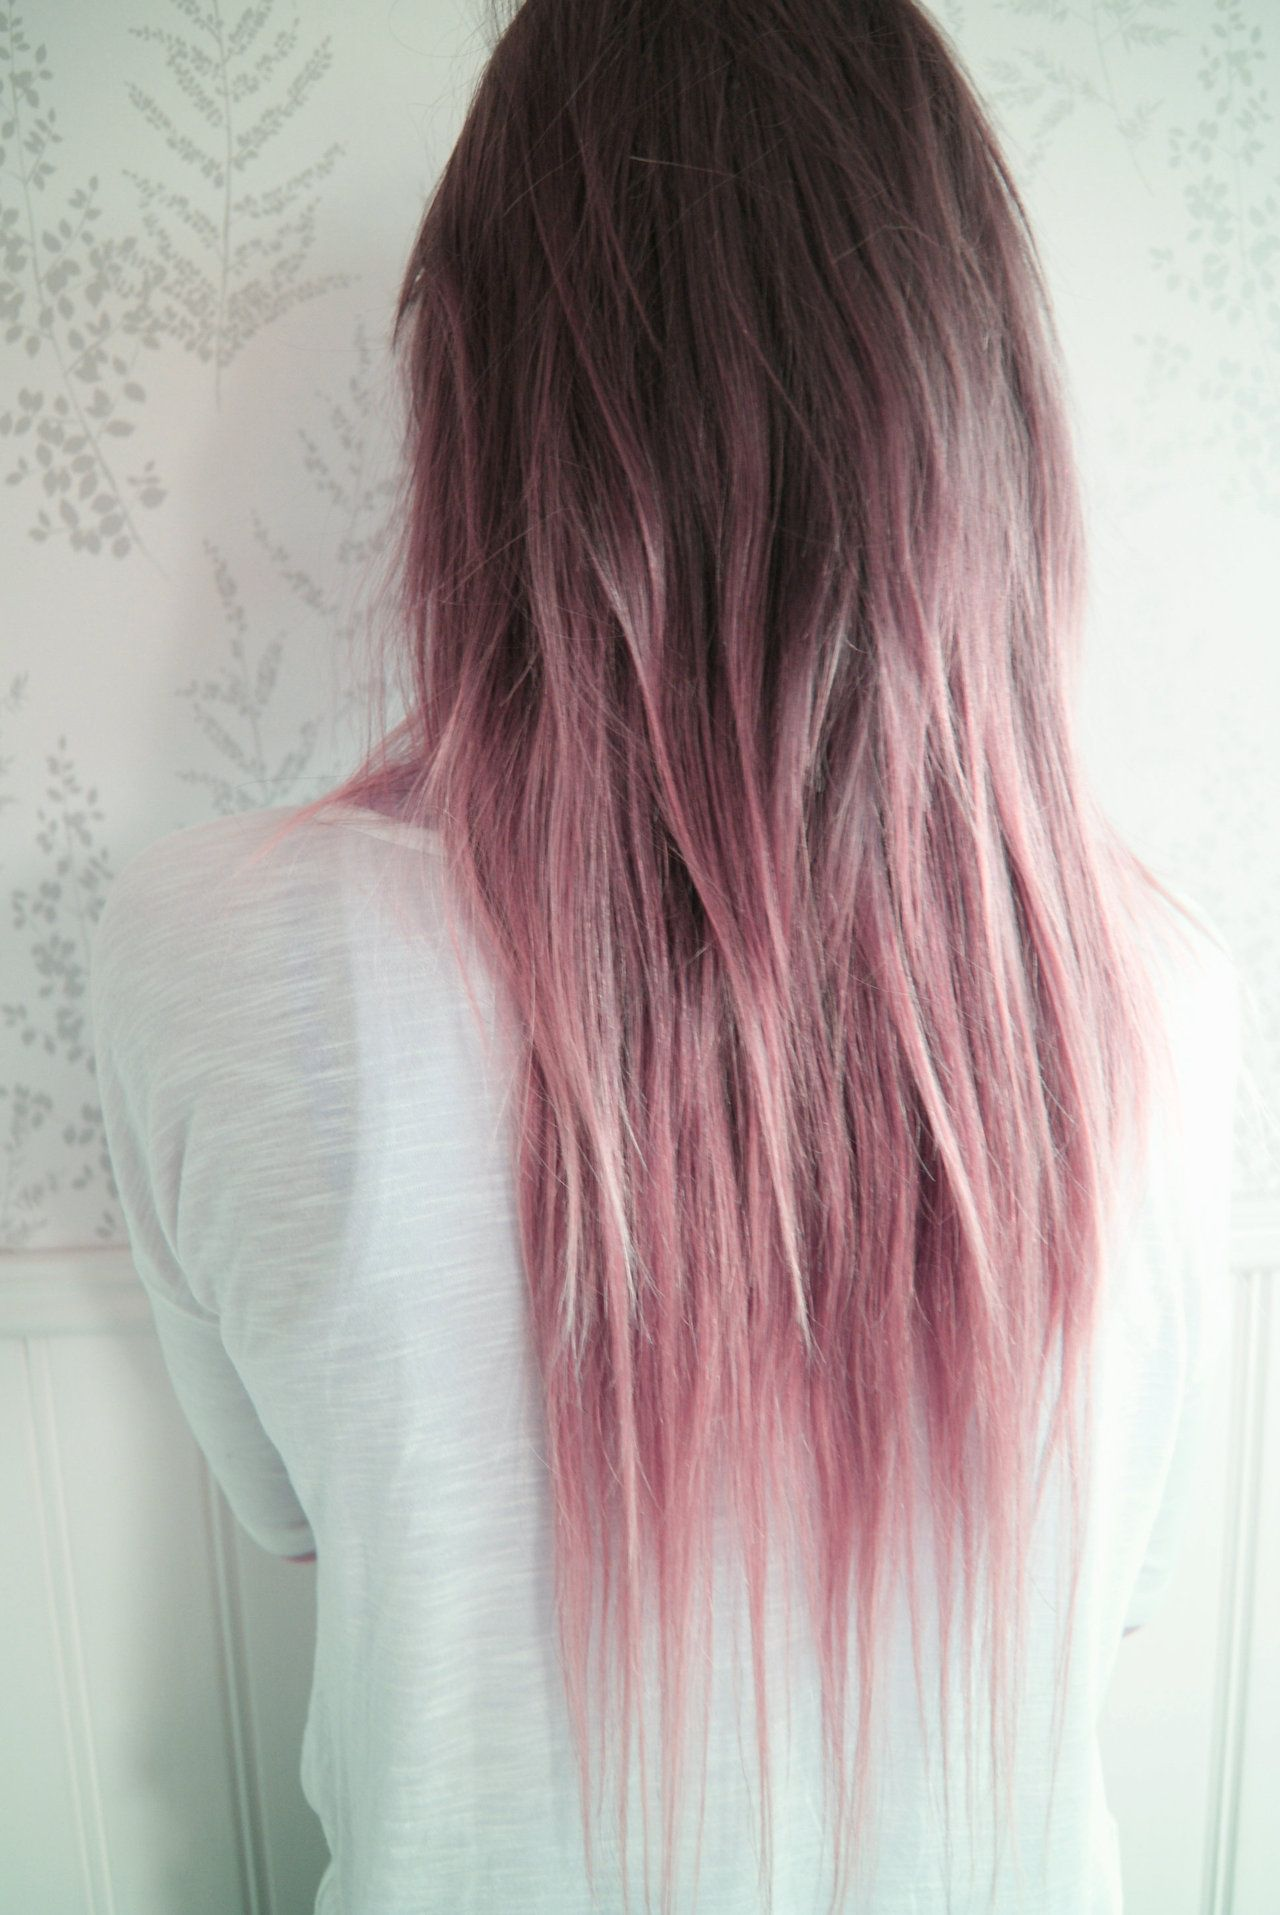 Brown And Pink Living Room Decor: Dyed Hair, Hair Styles